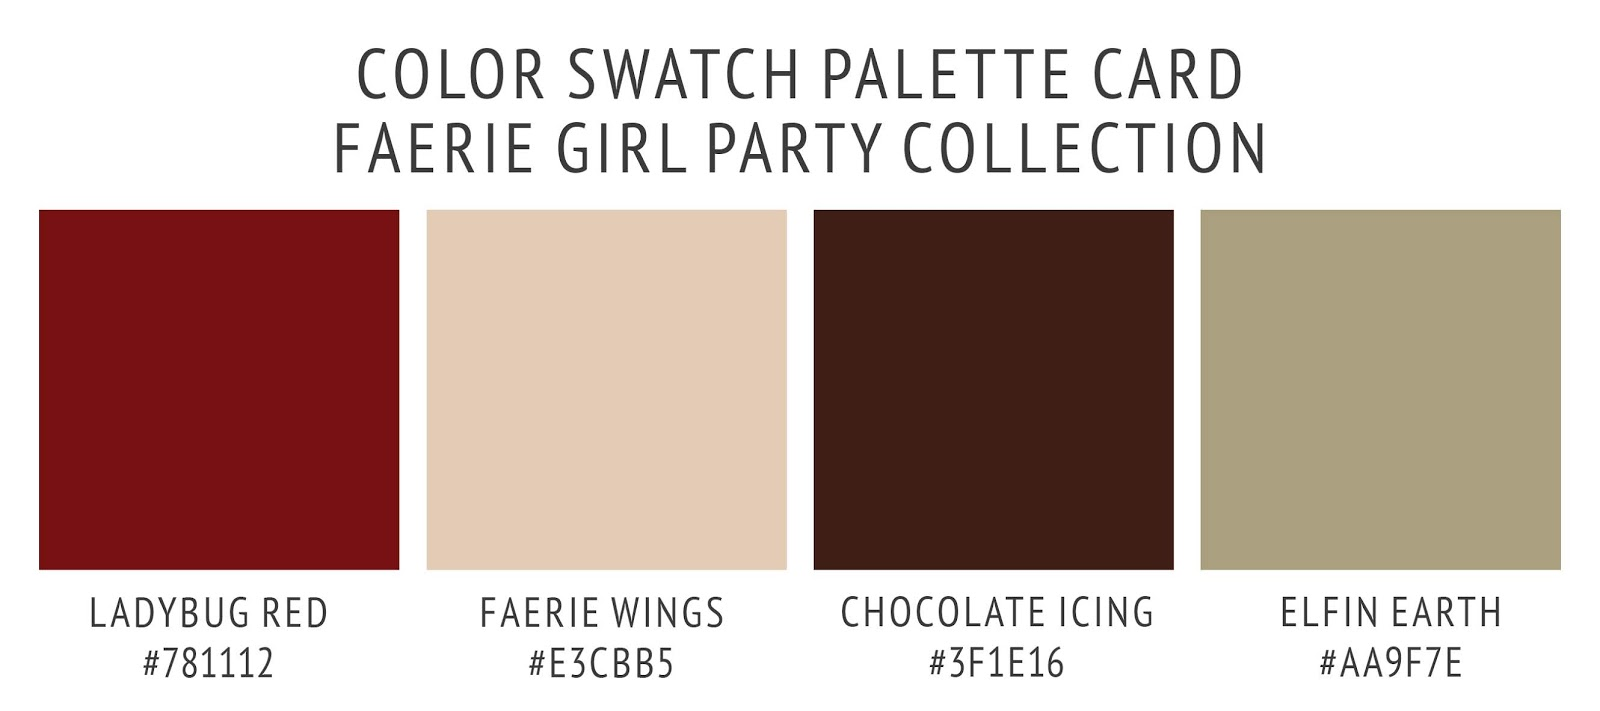 Ladybug fairy party collection color palette paint swatch card with hex codes. In ladybug red, fairy wings nude, chocolate icing brown, and elfin earth tan.